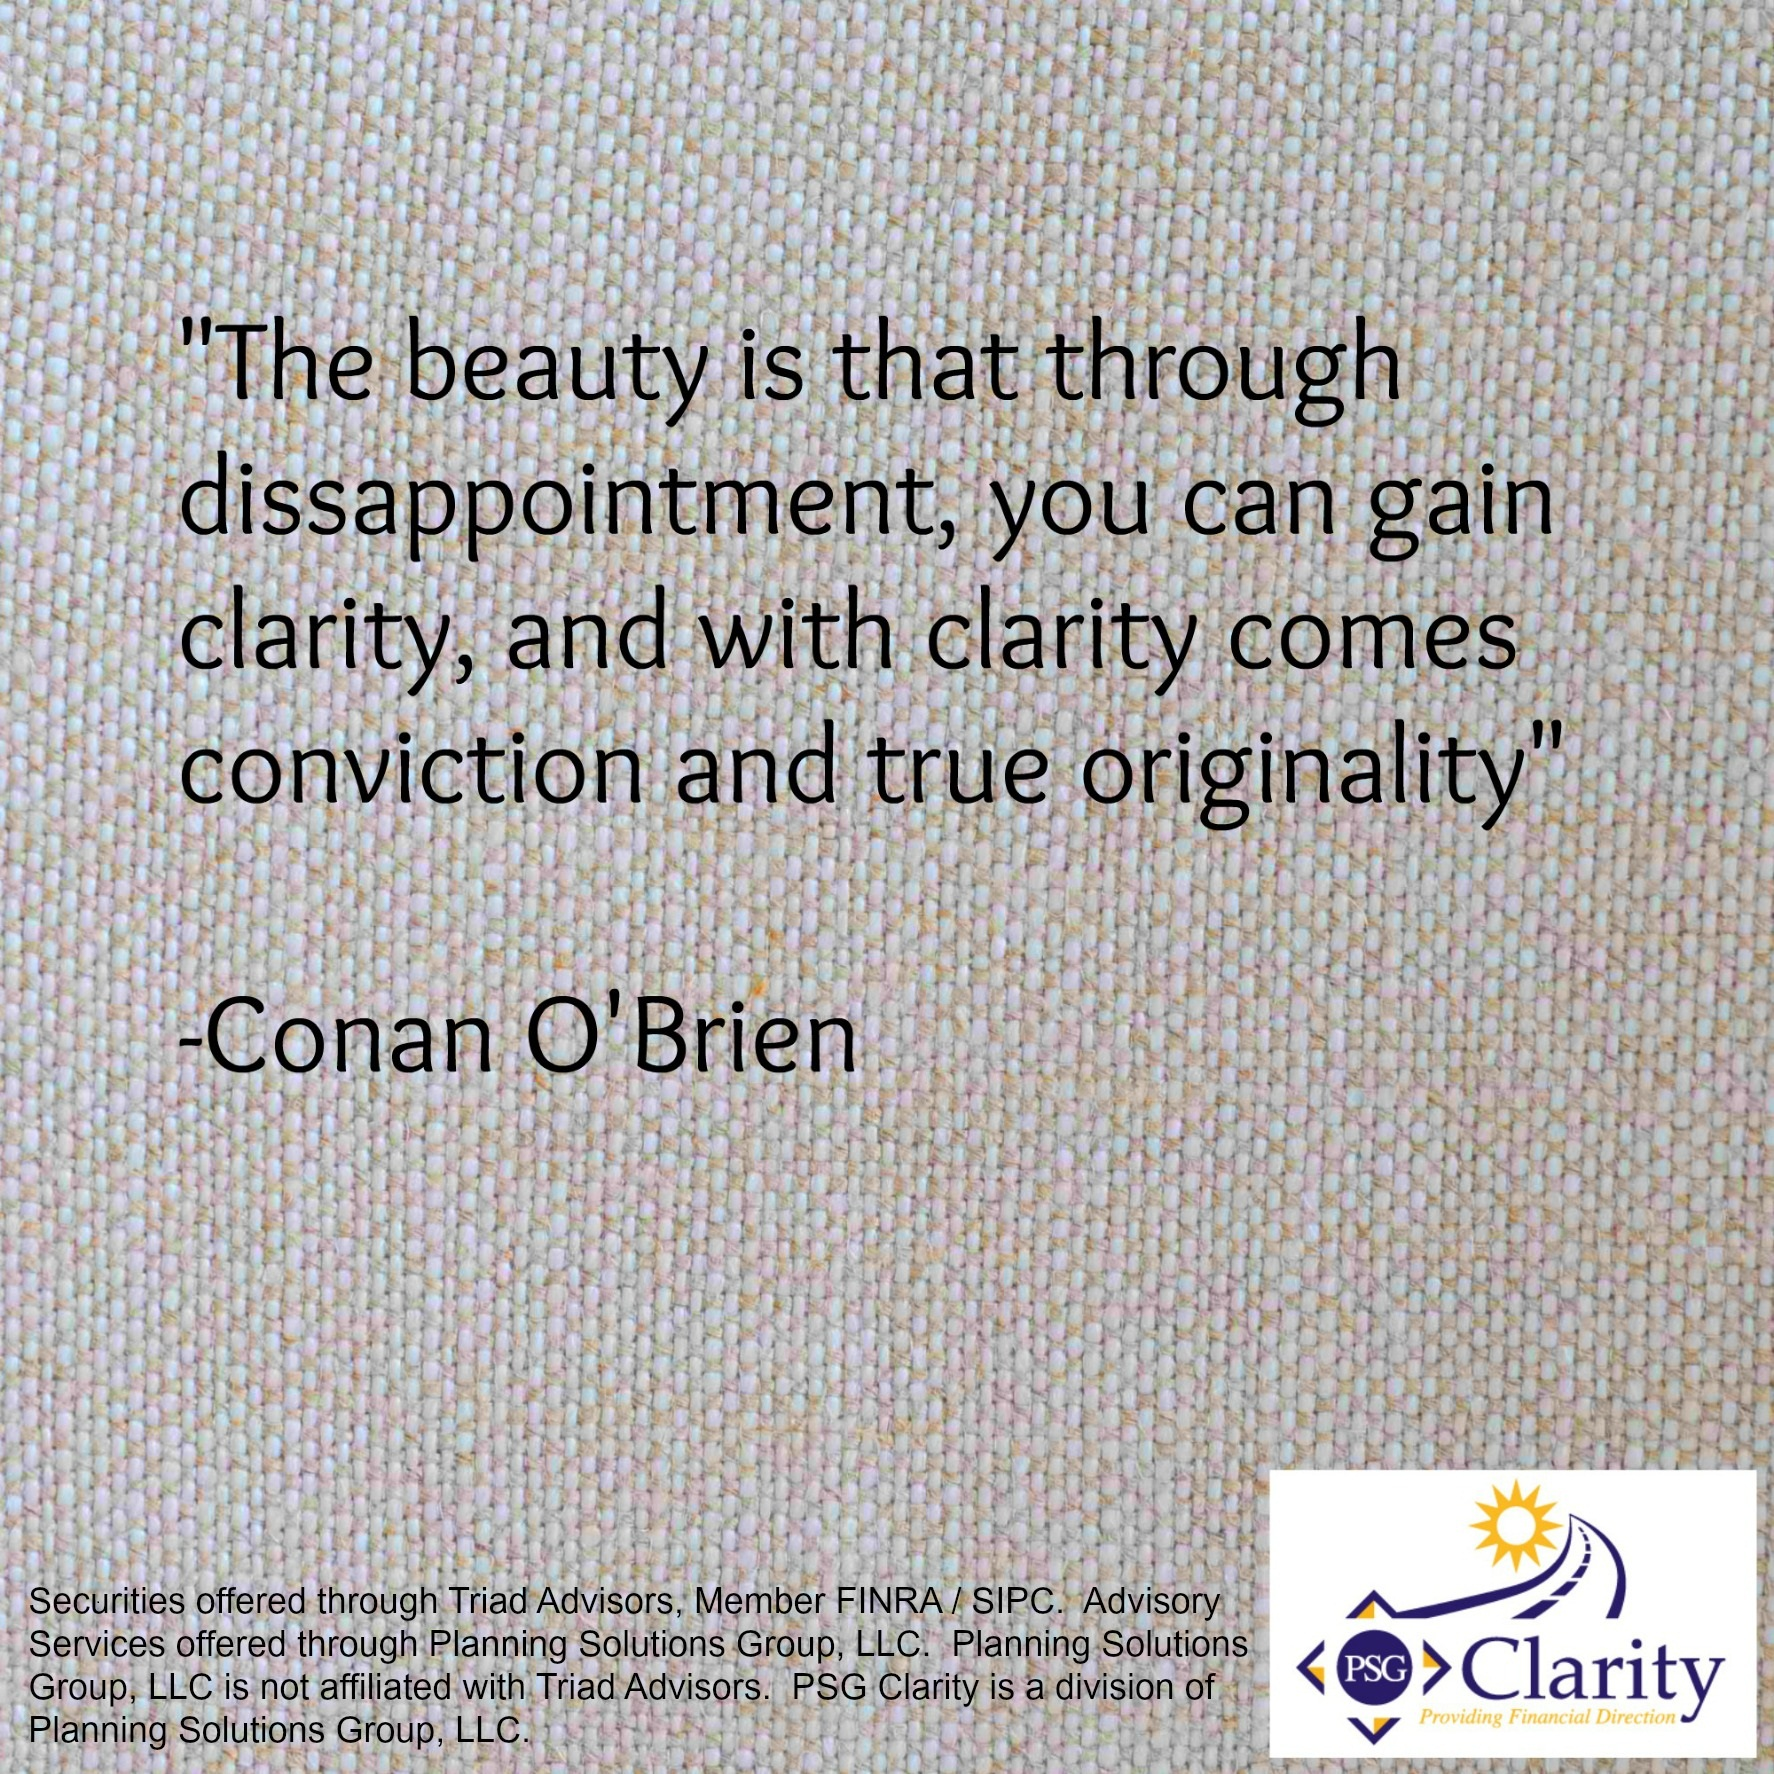 The beauty is that through disappointment you can gain clarity, and with clarity comes conviction and true originality. Conan O'Brien